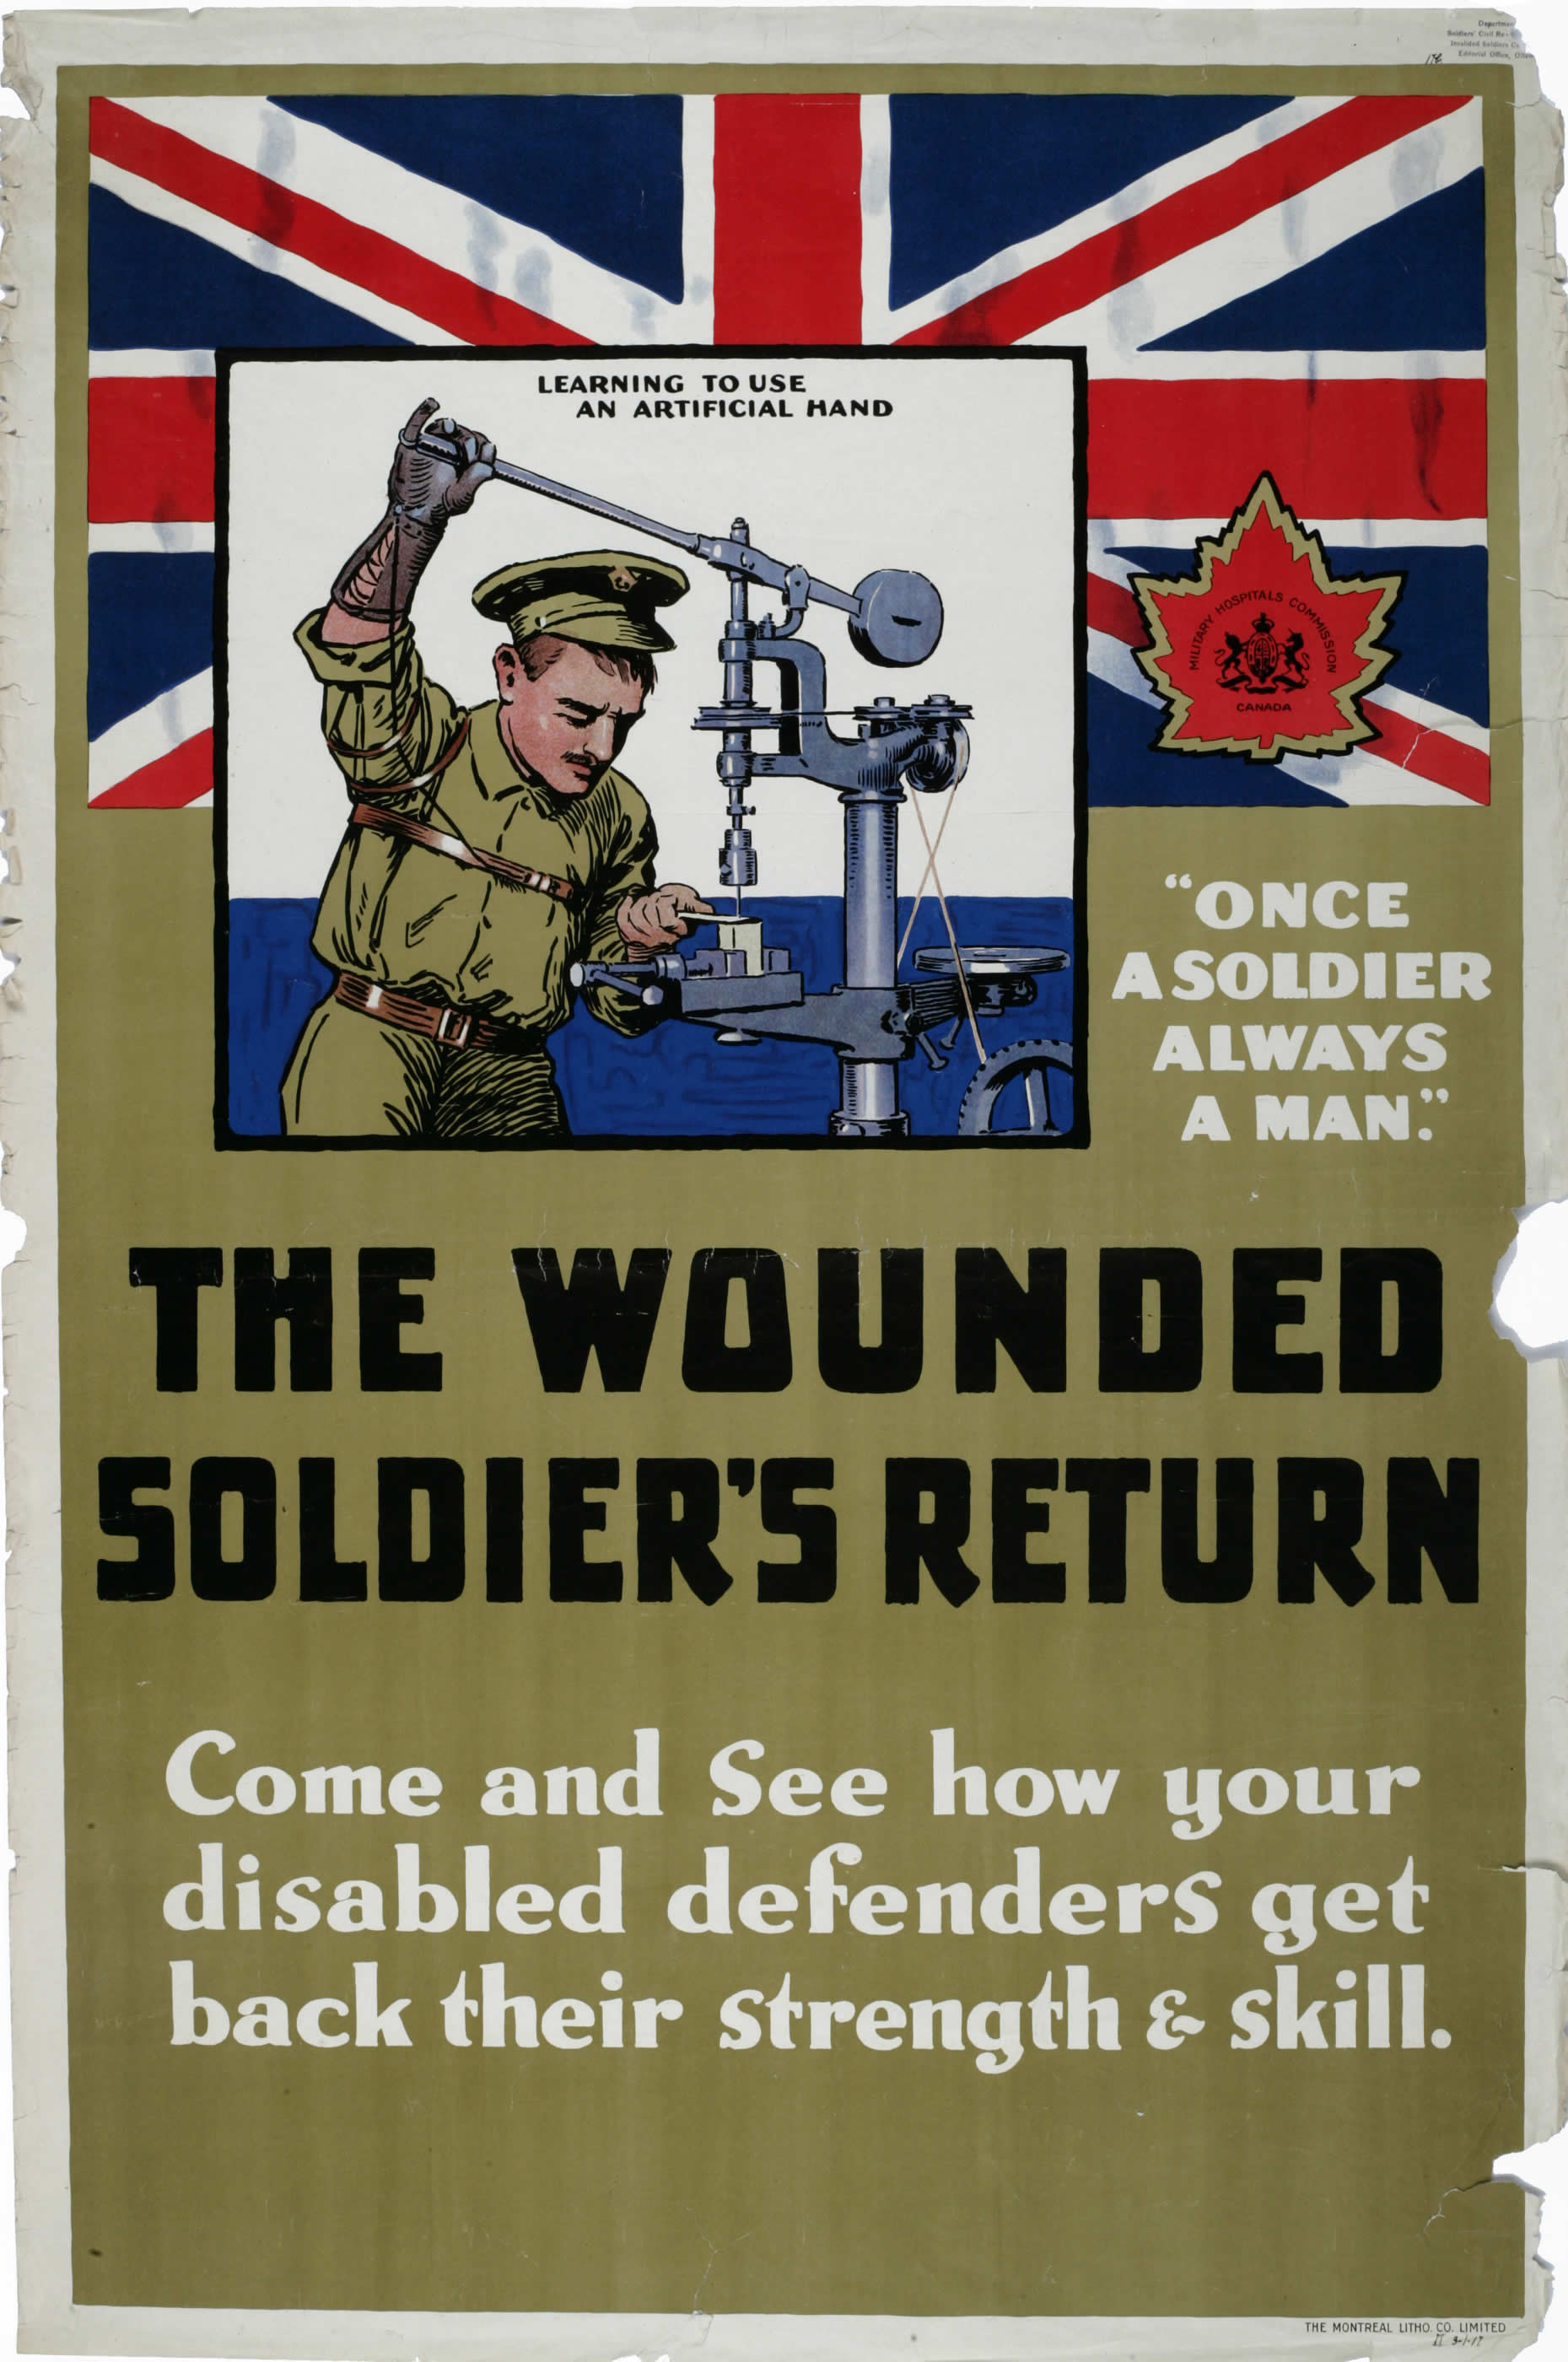 The Wounded Soldier's Return